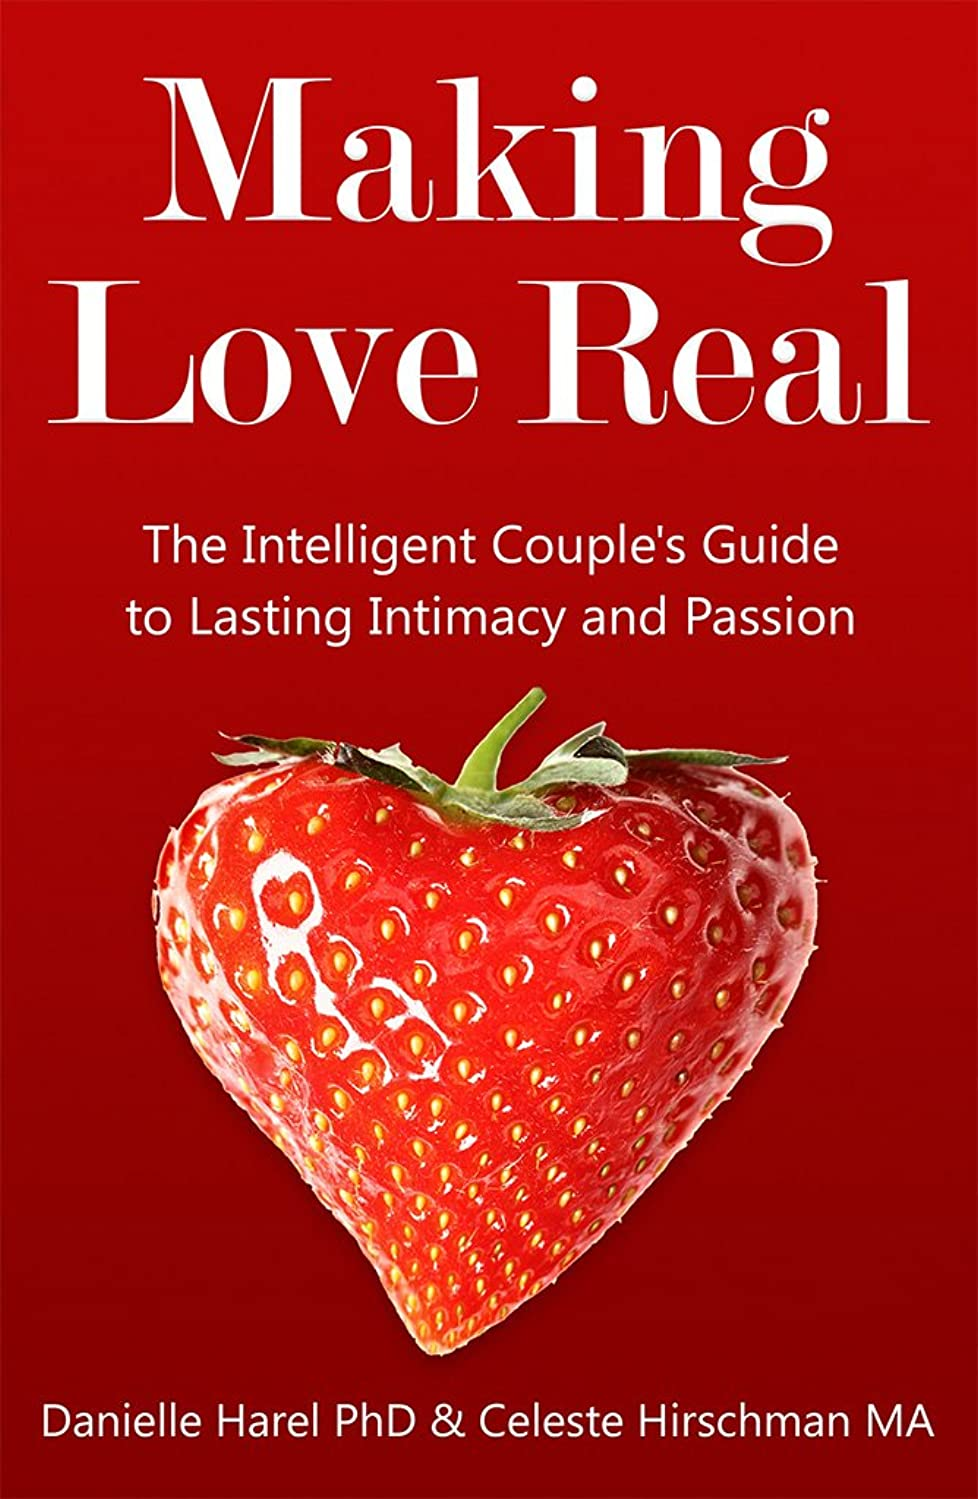 土器鎮静剤仕立て屋Making Love Real: The Intelligent Couple's Guide to Lasting Intimacy and Passion (English Edition)